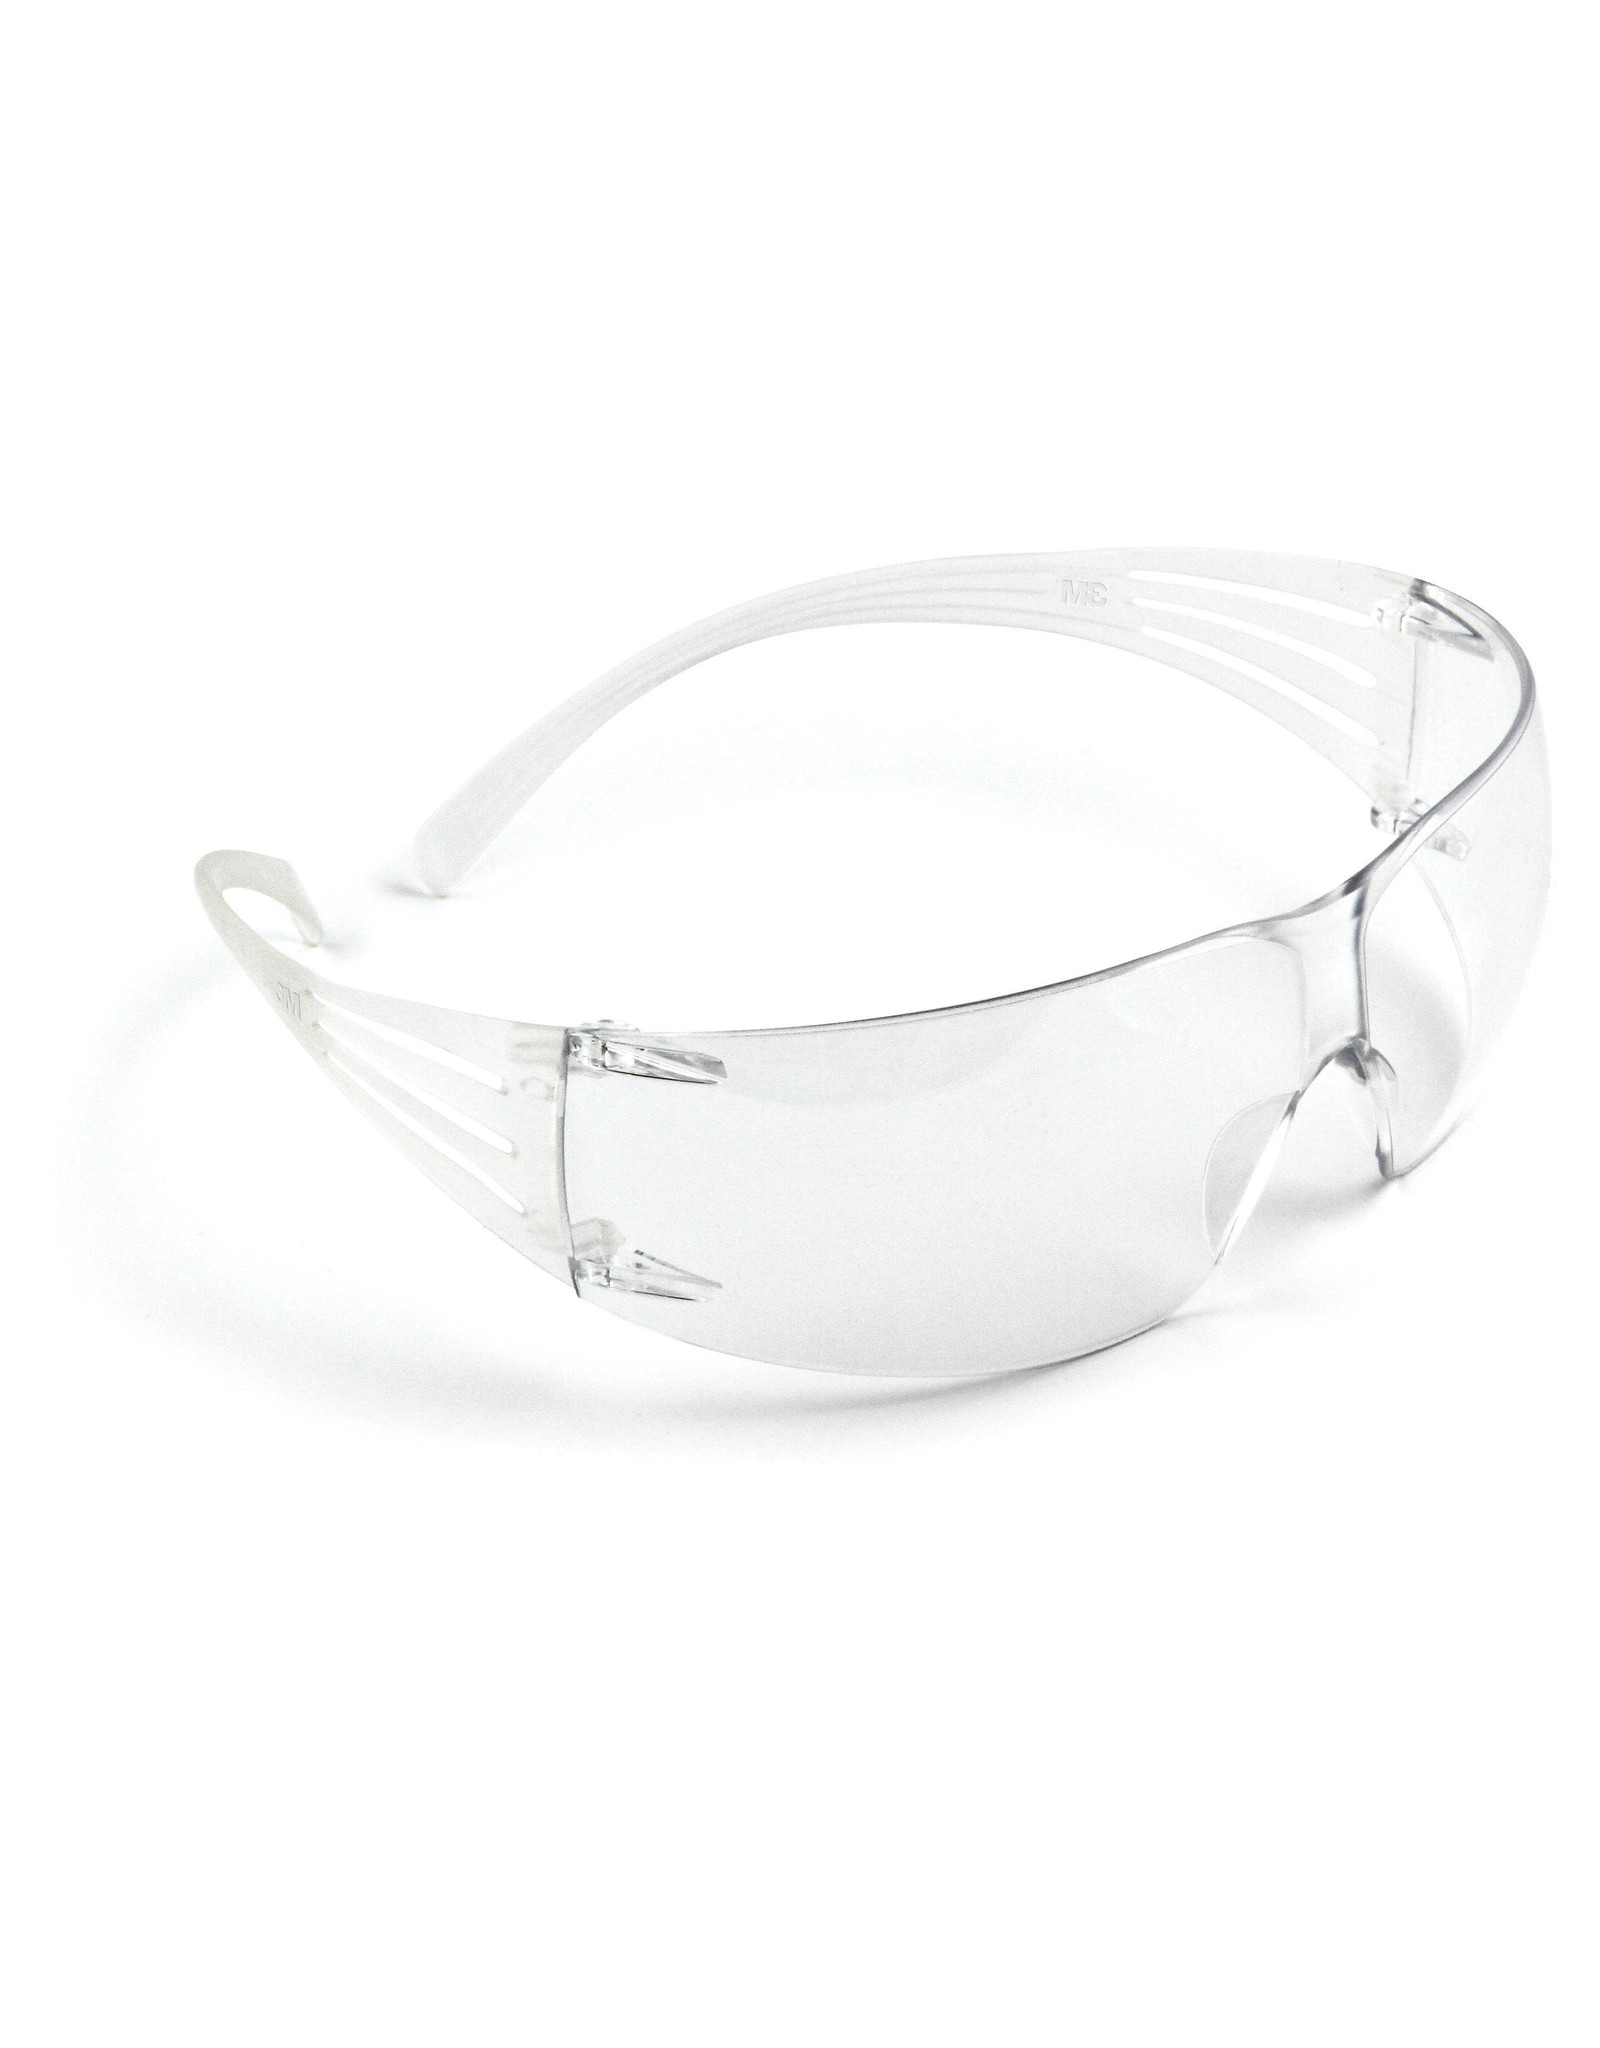 Clear 3M Safety Glasses antiscratch